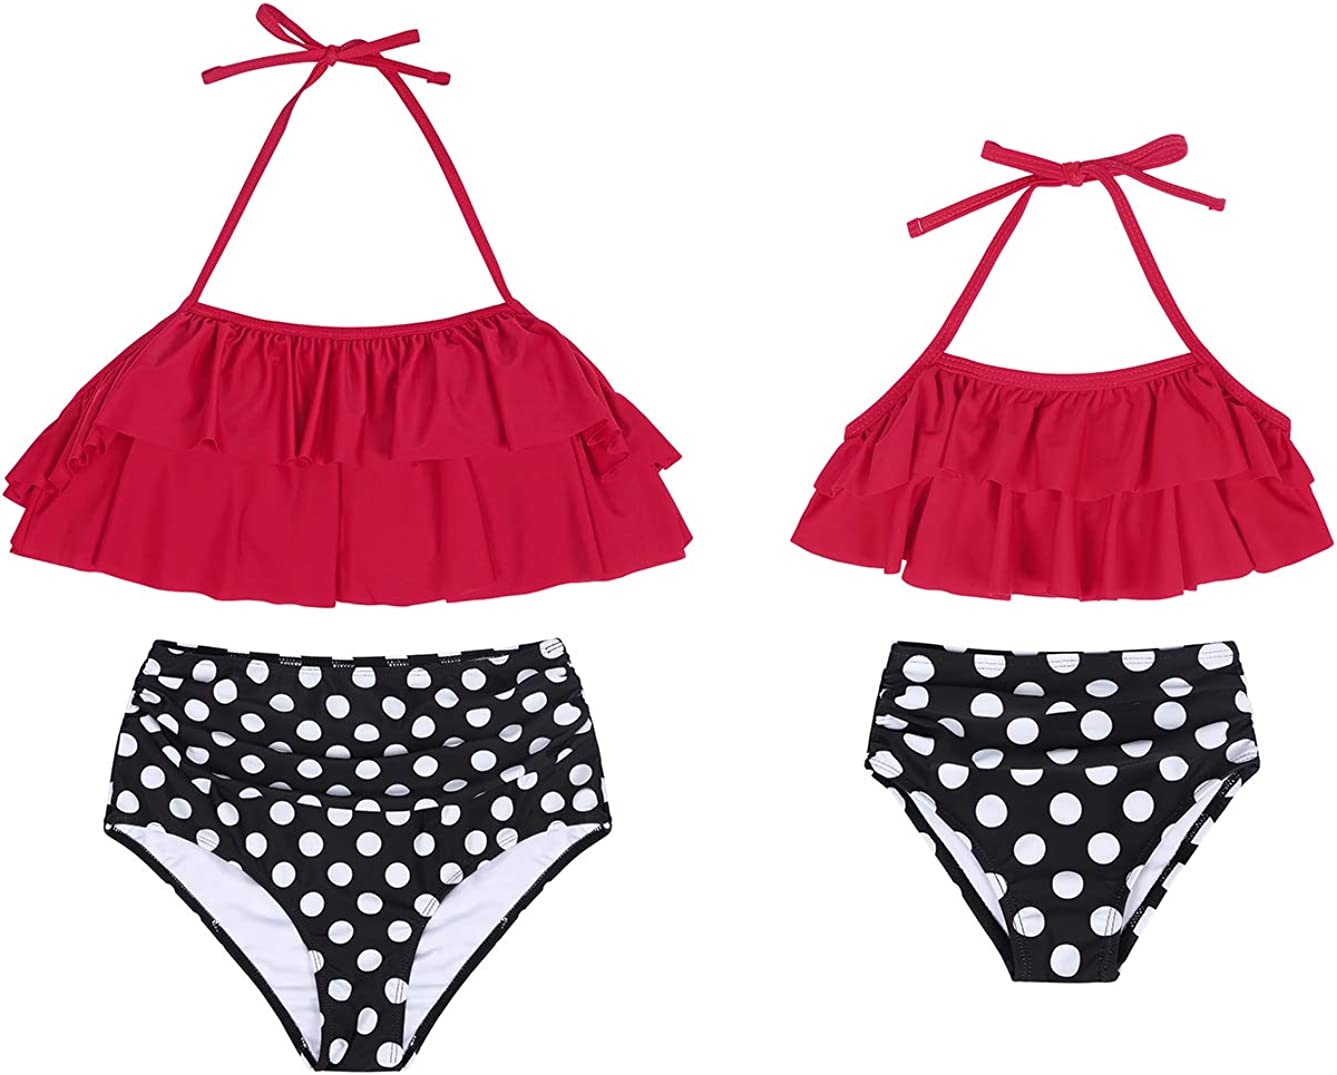 Kantenia Family Matching Swimsuit High Waisted Ruffle Swimwear Two Pieces Bikini Set Mommy and Me Bathing Suits